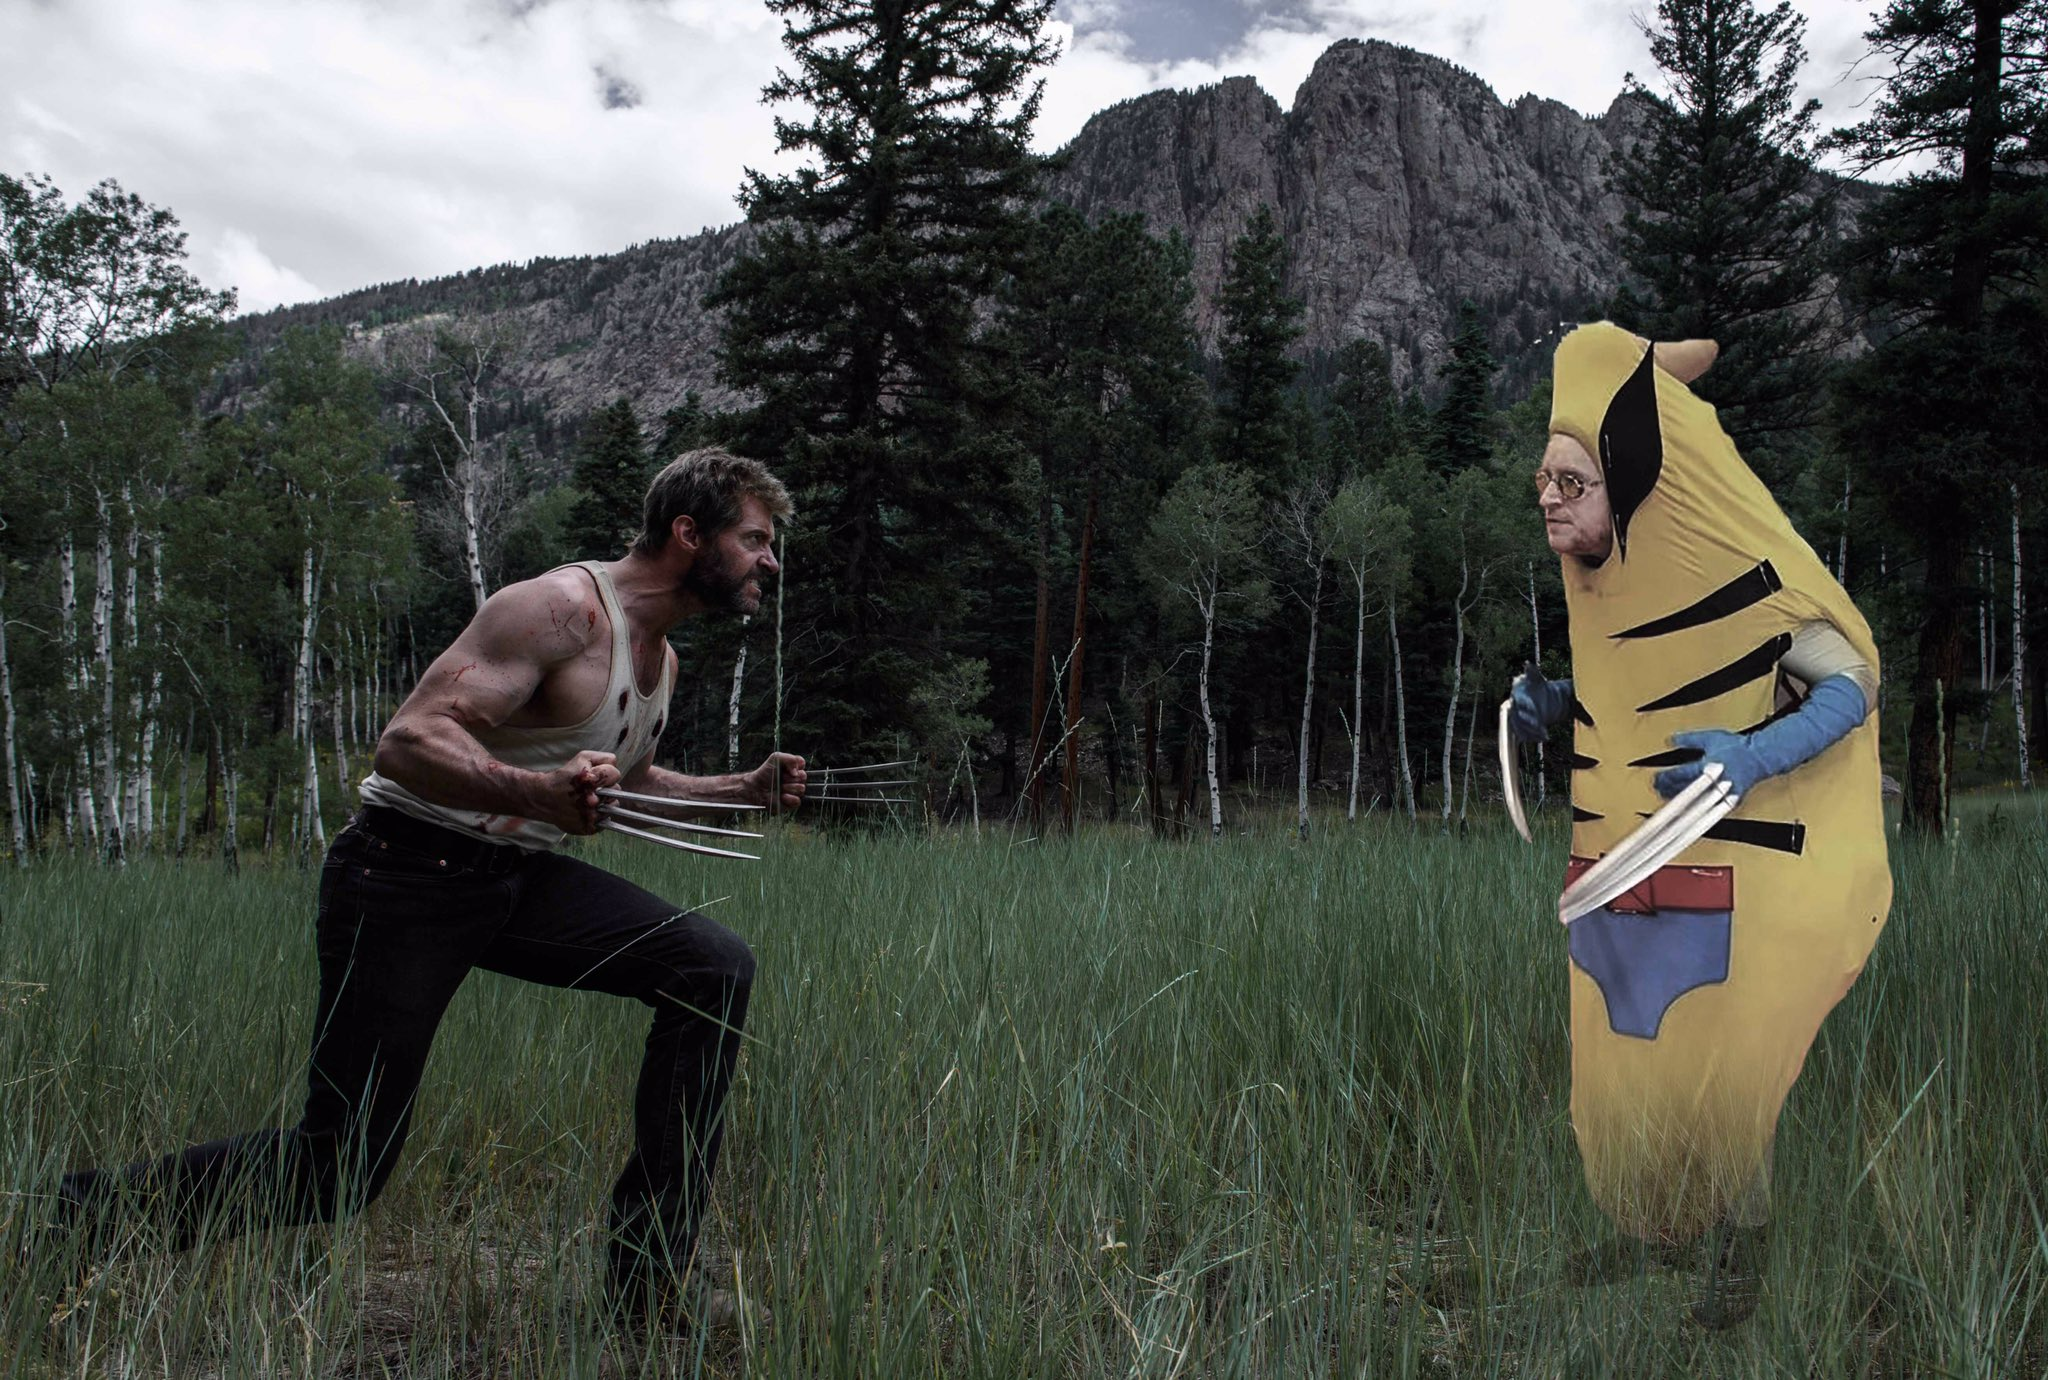 Fight scene with the one and only! #BananaWolverine @WolverineMovie @20thcenturyfox https://t.co/7EfuUmV29u